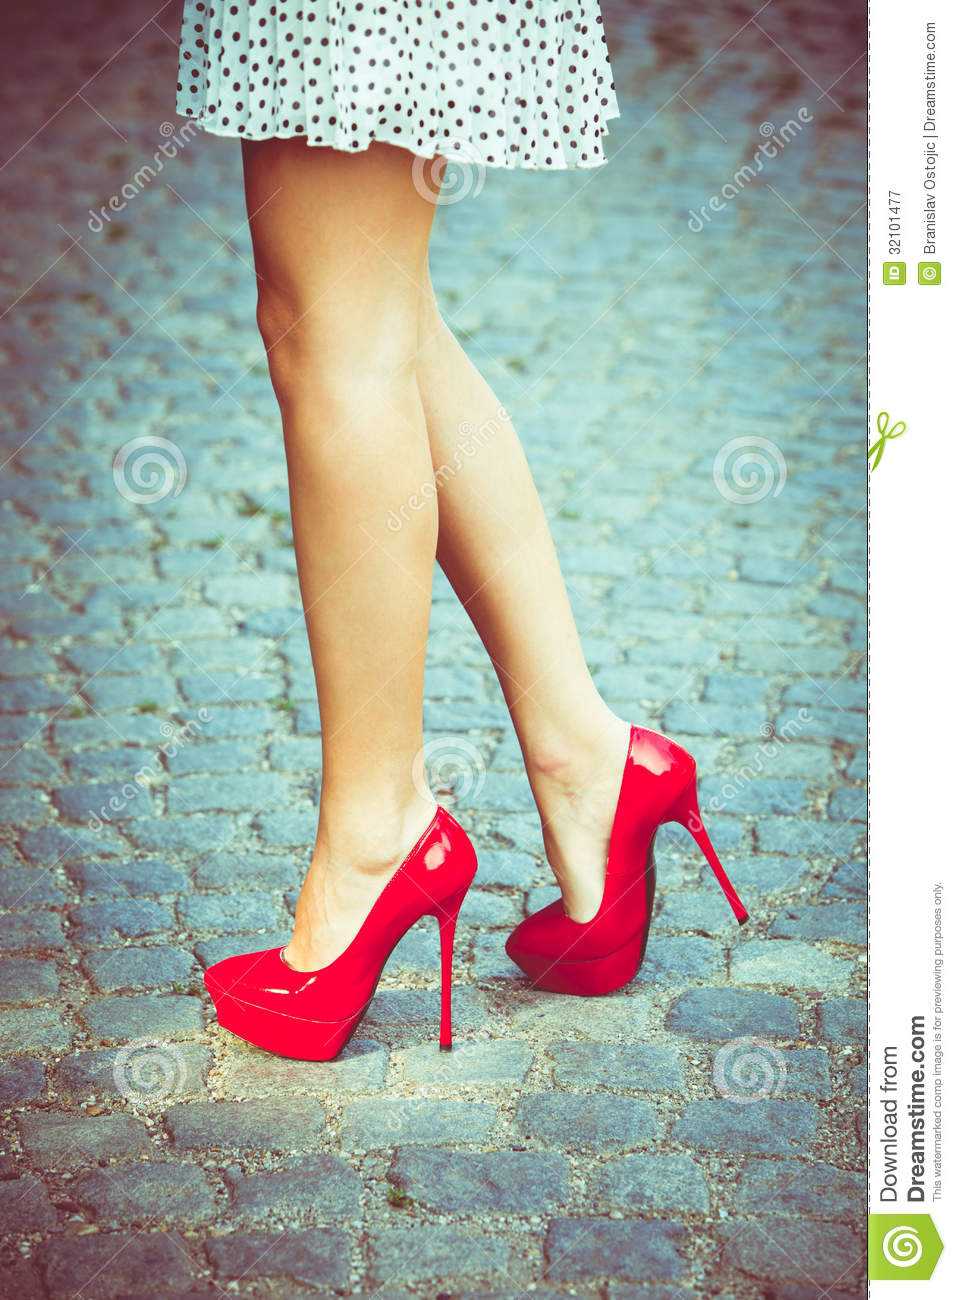 Red Shoes Royalty Free Stock Photography - Image: 32101477